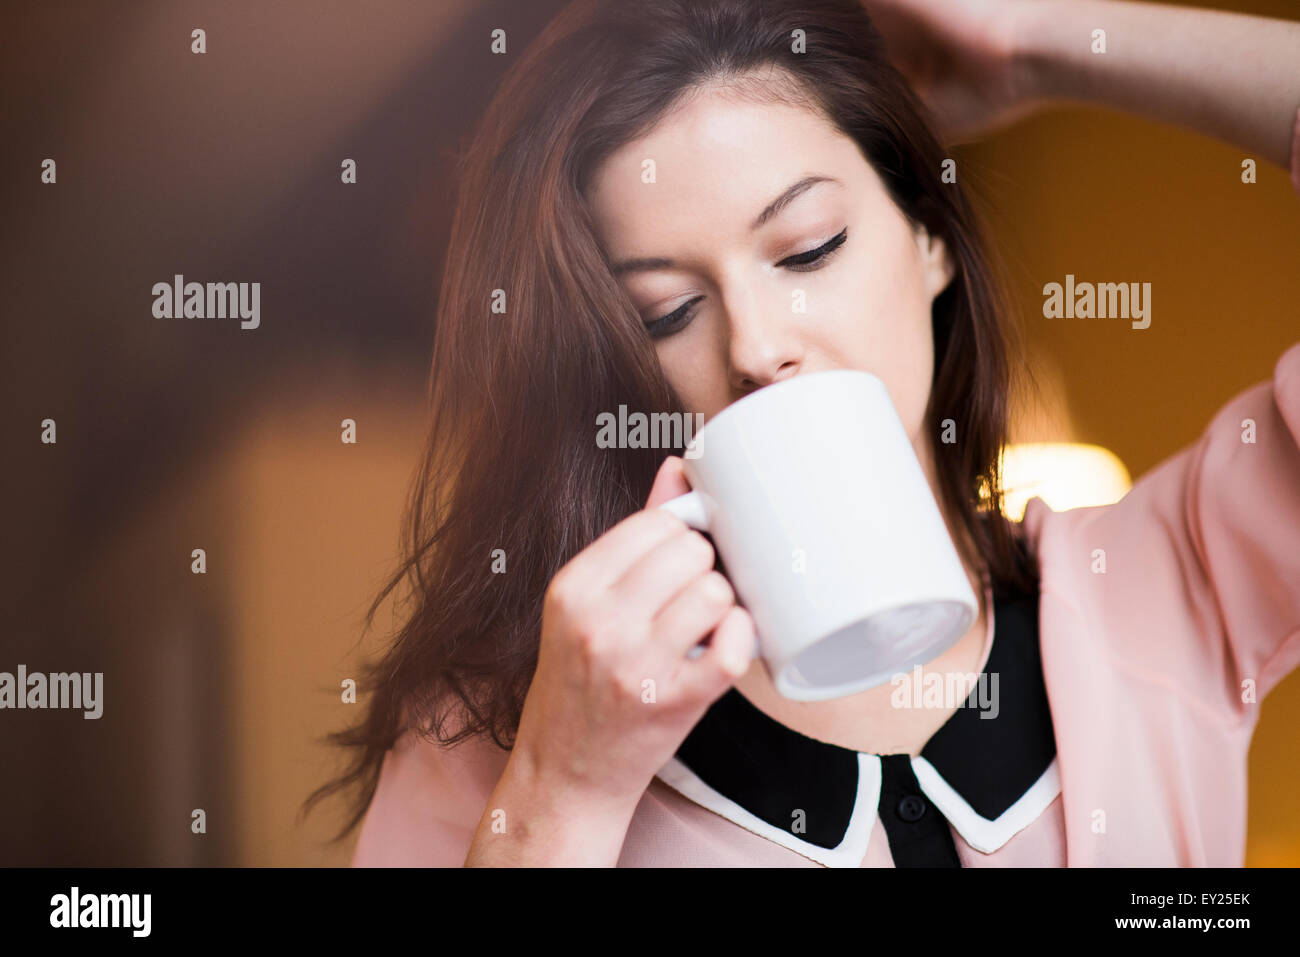 Young woman drinking coffee Photo Stock